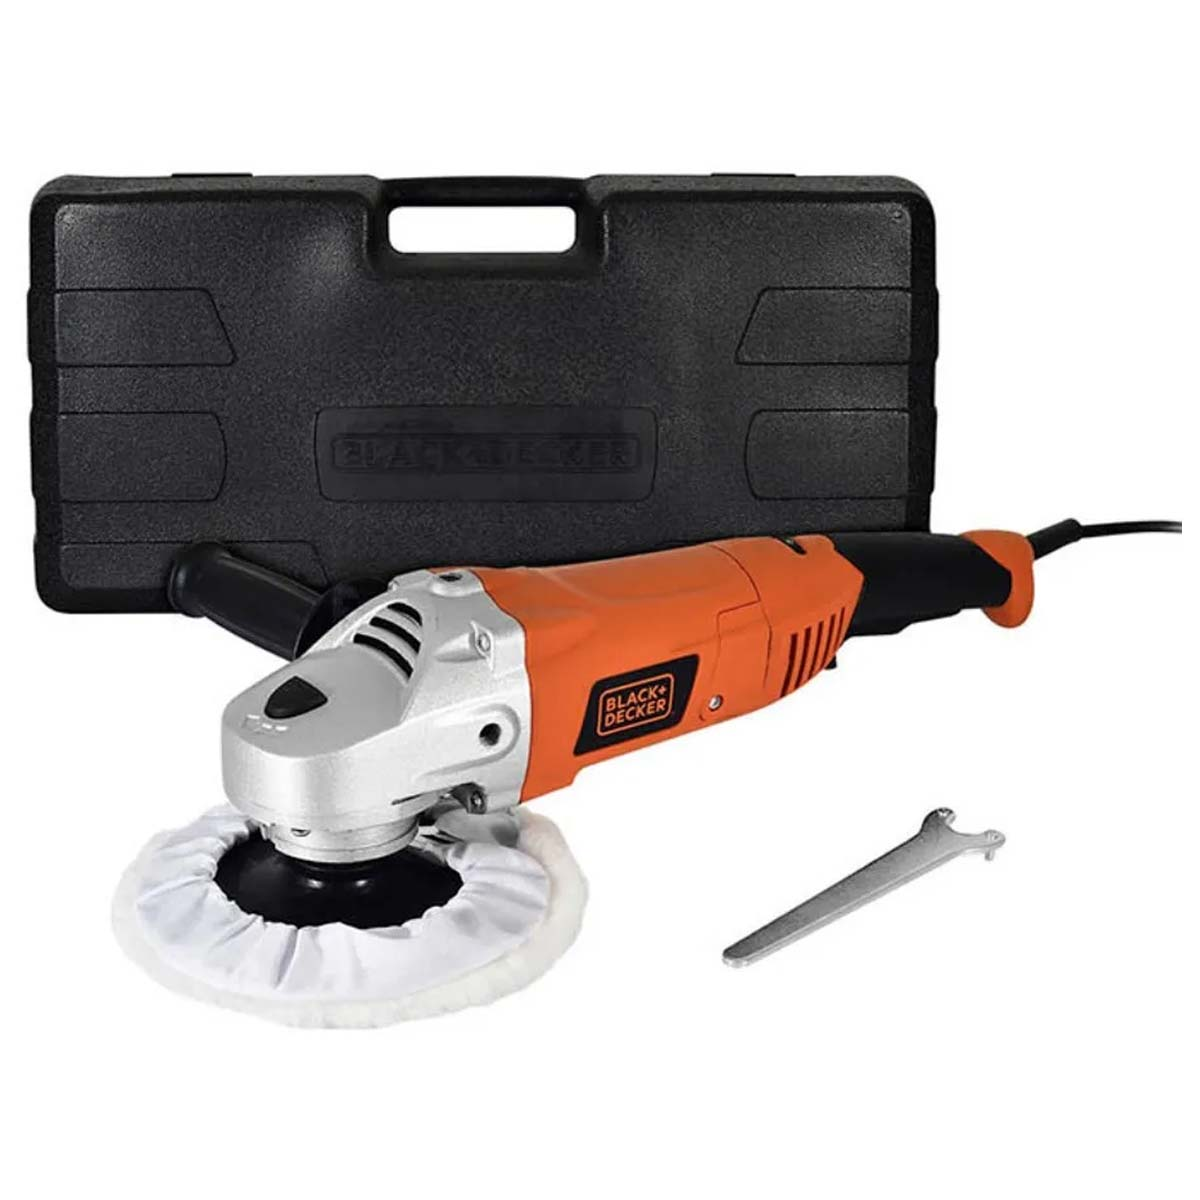 Pulidora Para Auto Black & Decker 7 Pulg 180mm 1300w Wp1500